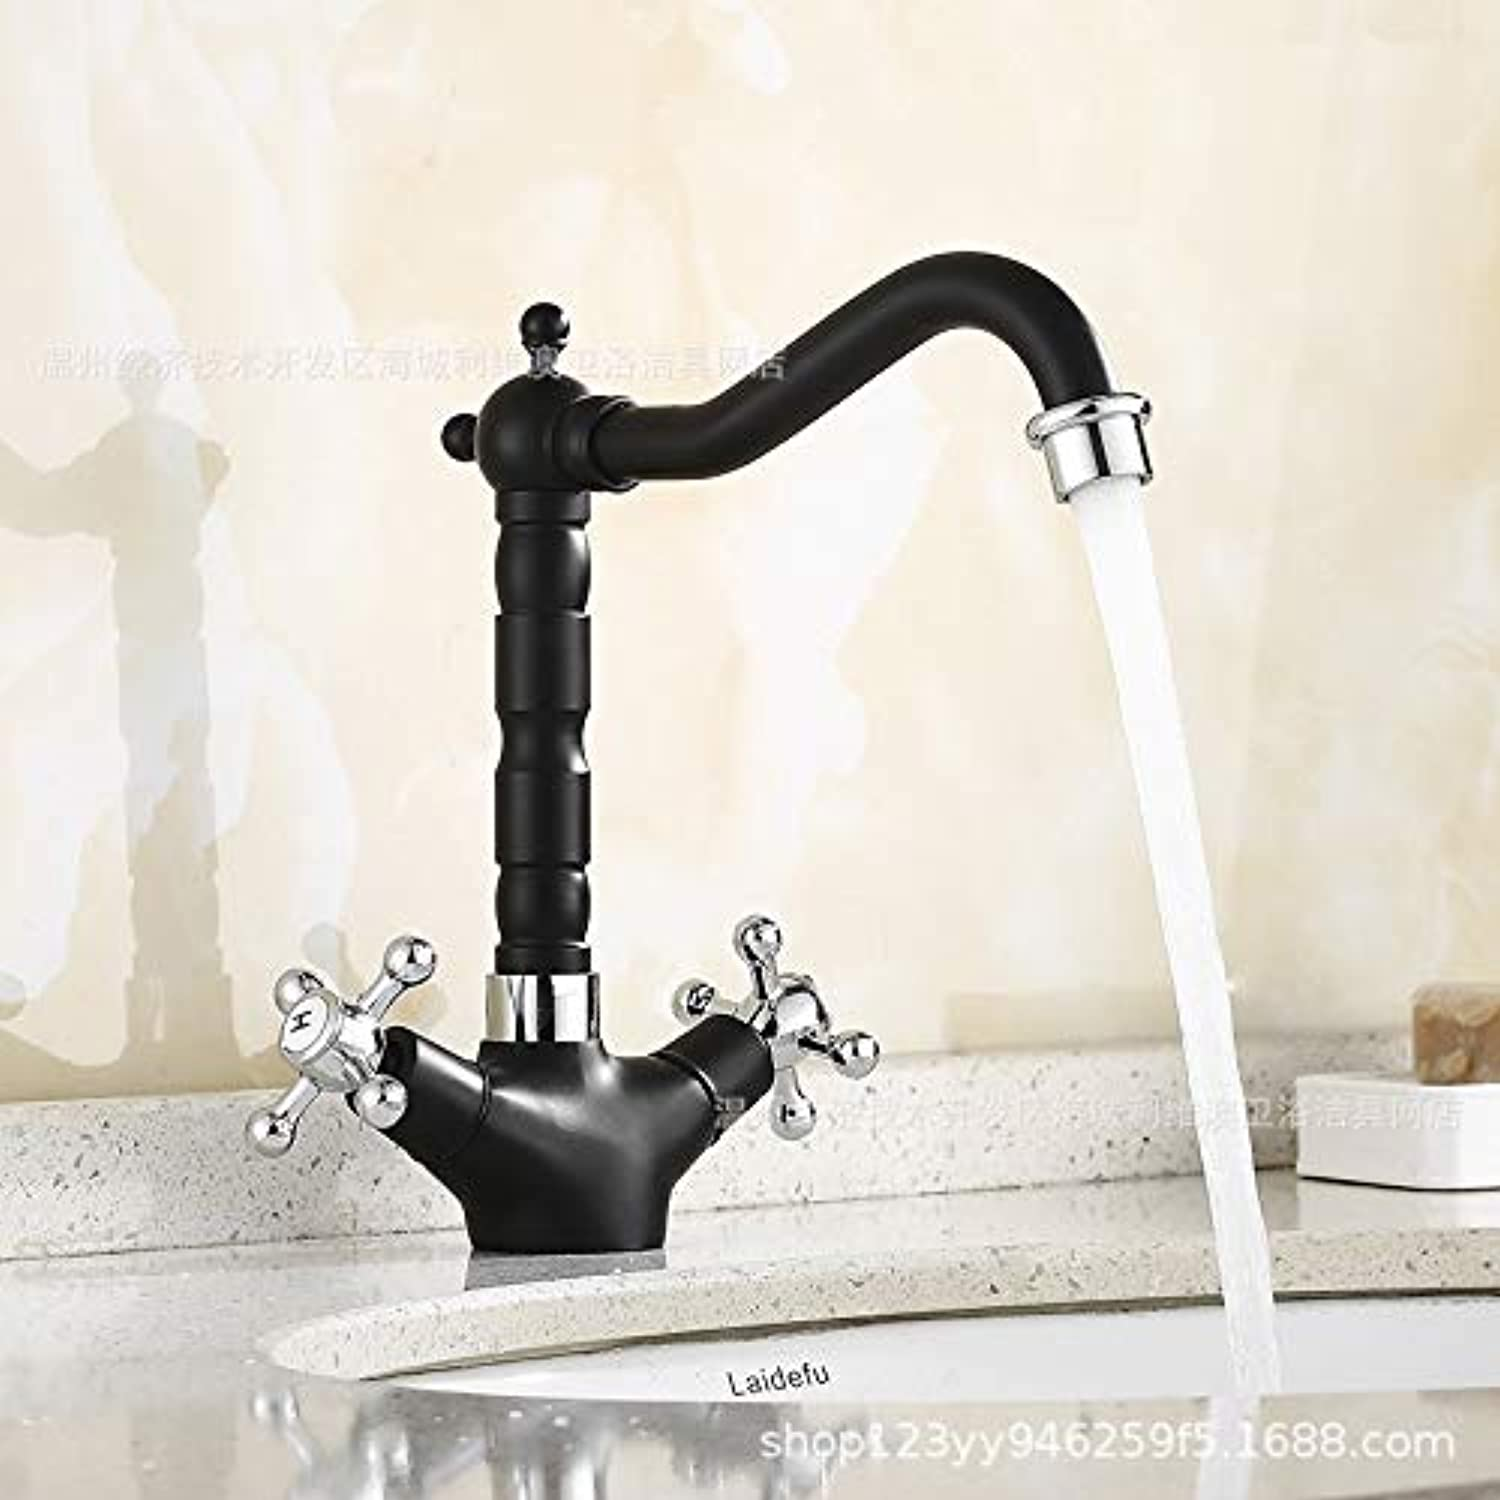 redOOY Bathroom Sink Taps Taps Faucet Basin Faucet Basin Faucet Bend Basin Faucet